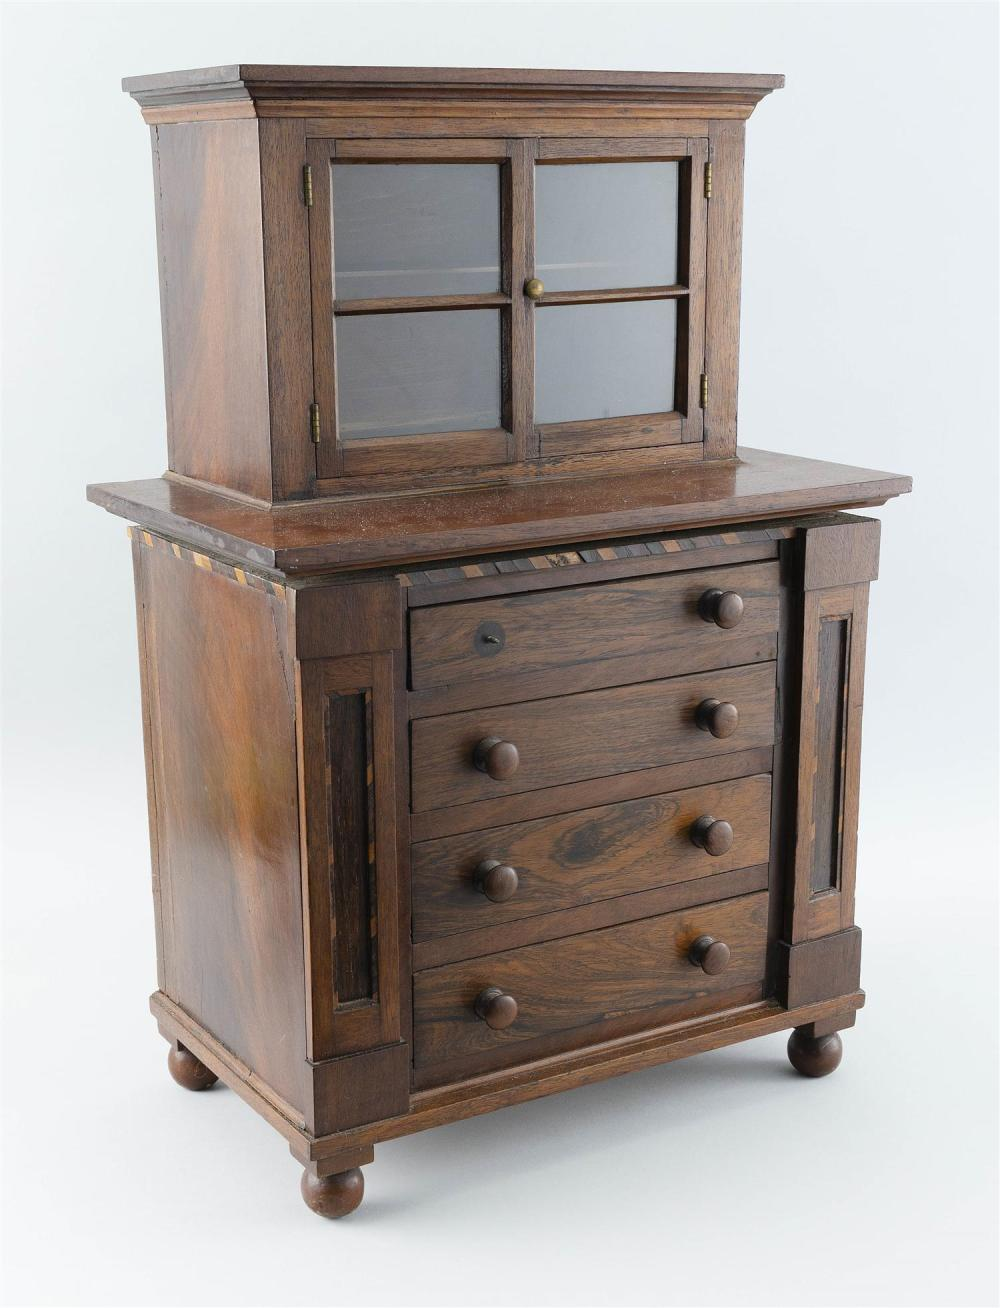 CHILD-SIZE TWO-PART CUPBOARD In mahogany and mahogany veneer. Upper case with a shaped cornice over two glass-paneled doors enclosin...